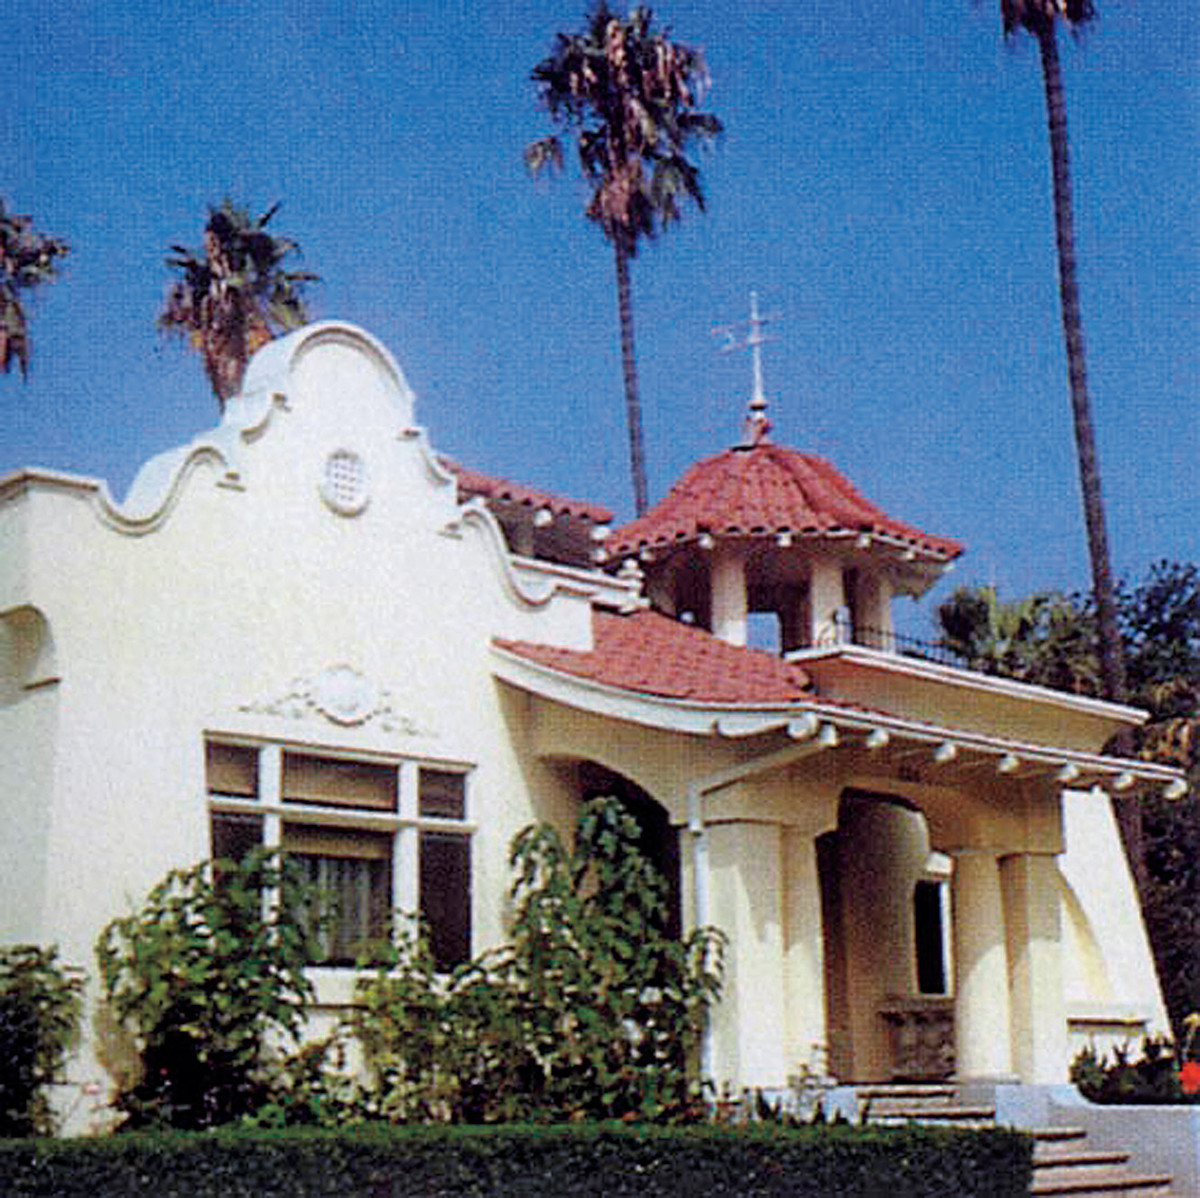 This is a rare bungalow-size example with a particularly pretty bell tower. The house is in Santa Barbara.